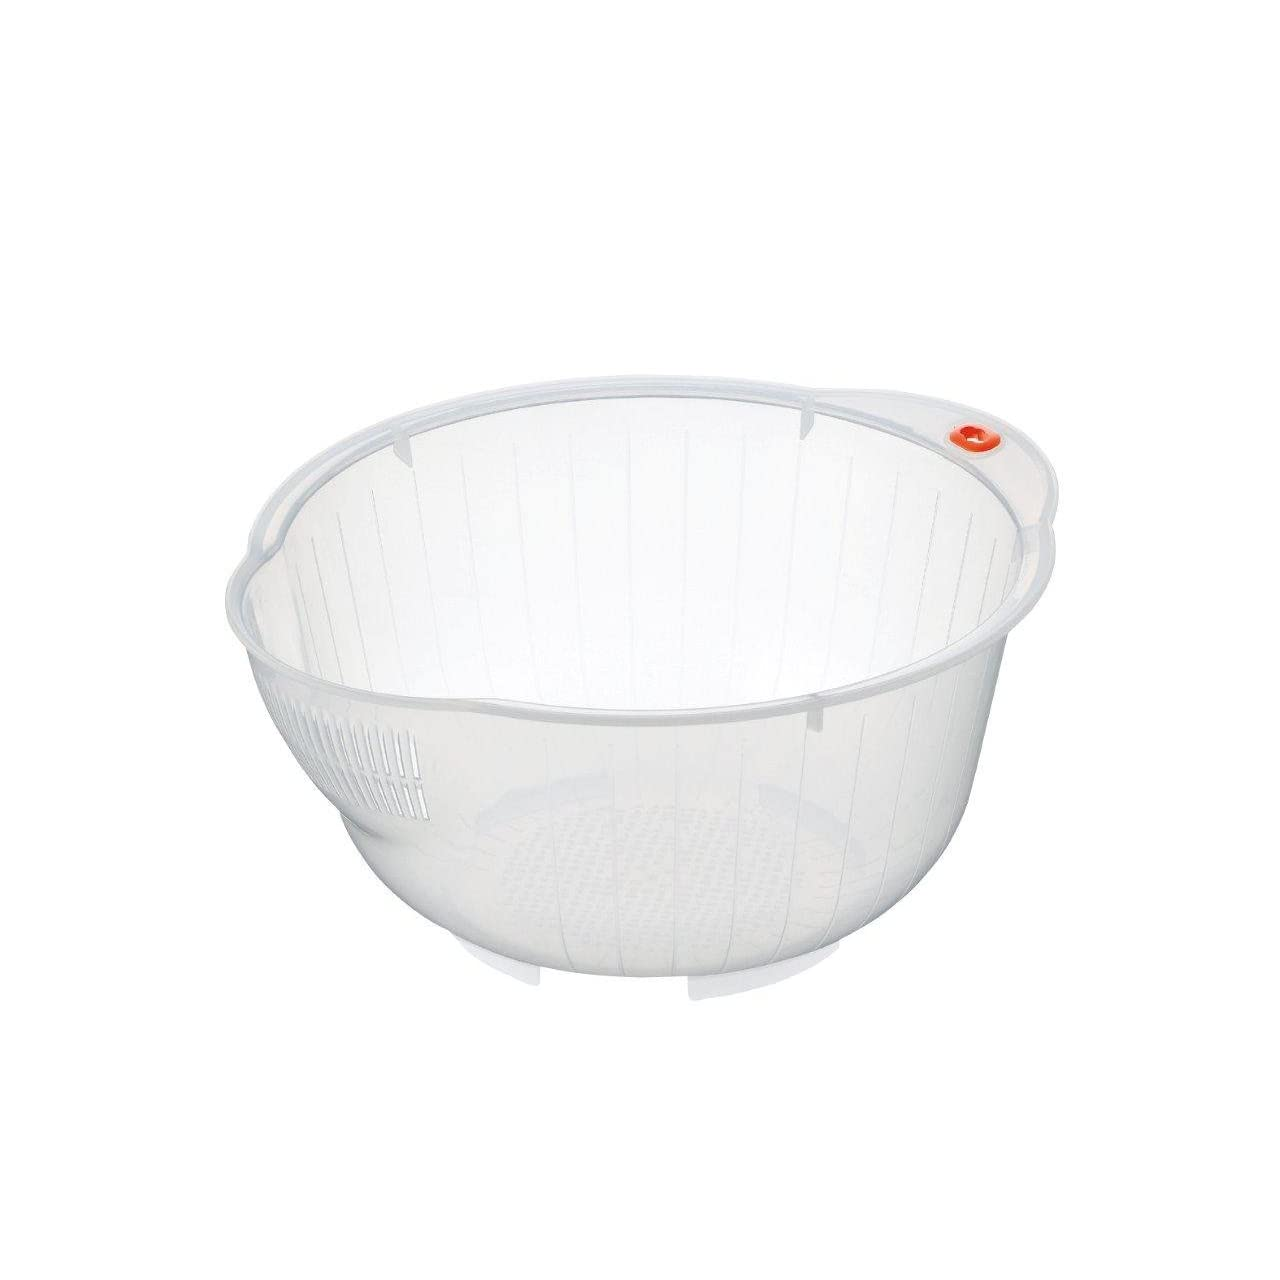 Inomata Japanese Rice Washing Bowl with Side and Bottom Drainers, Clear Review